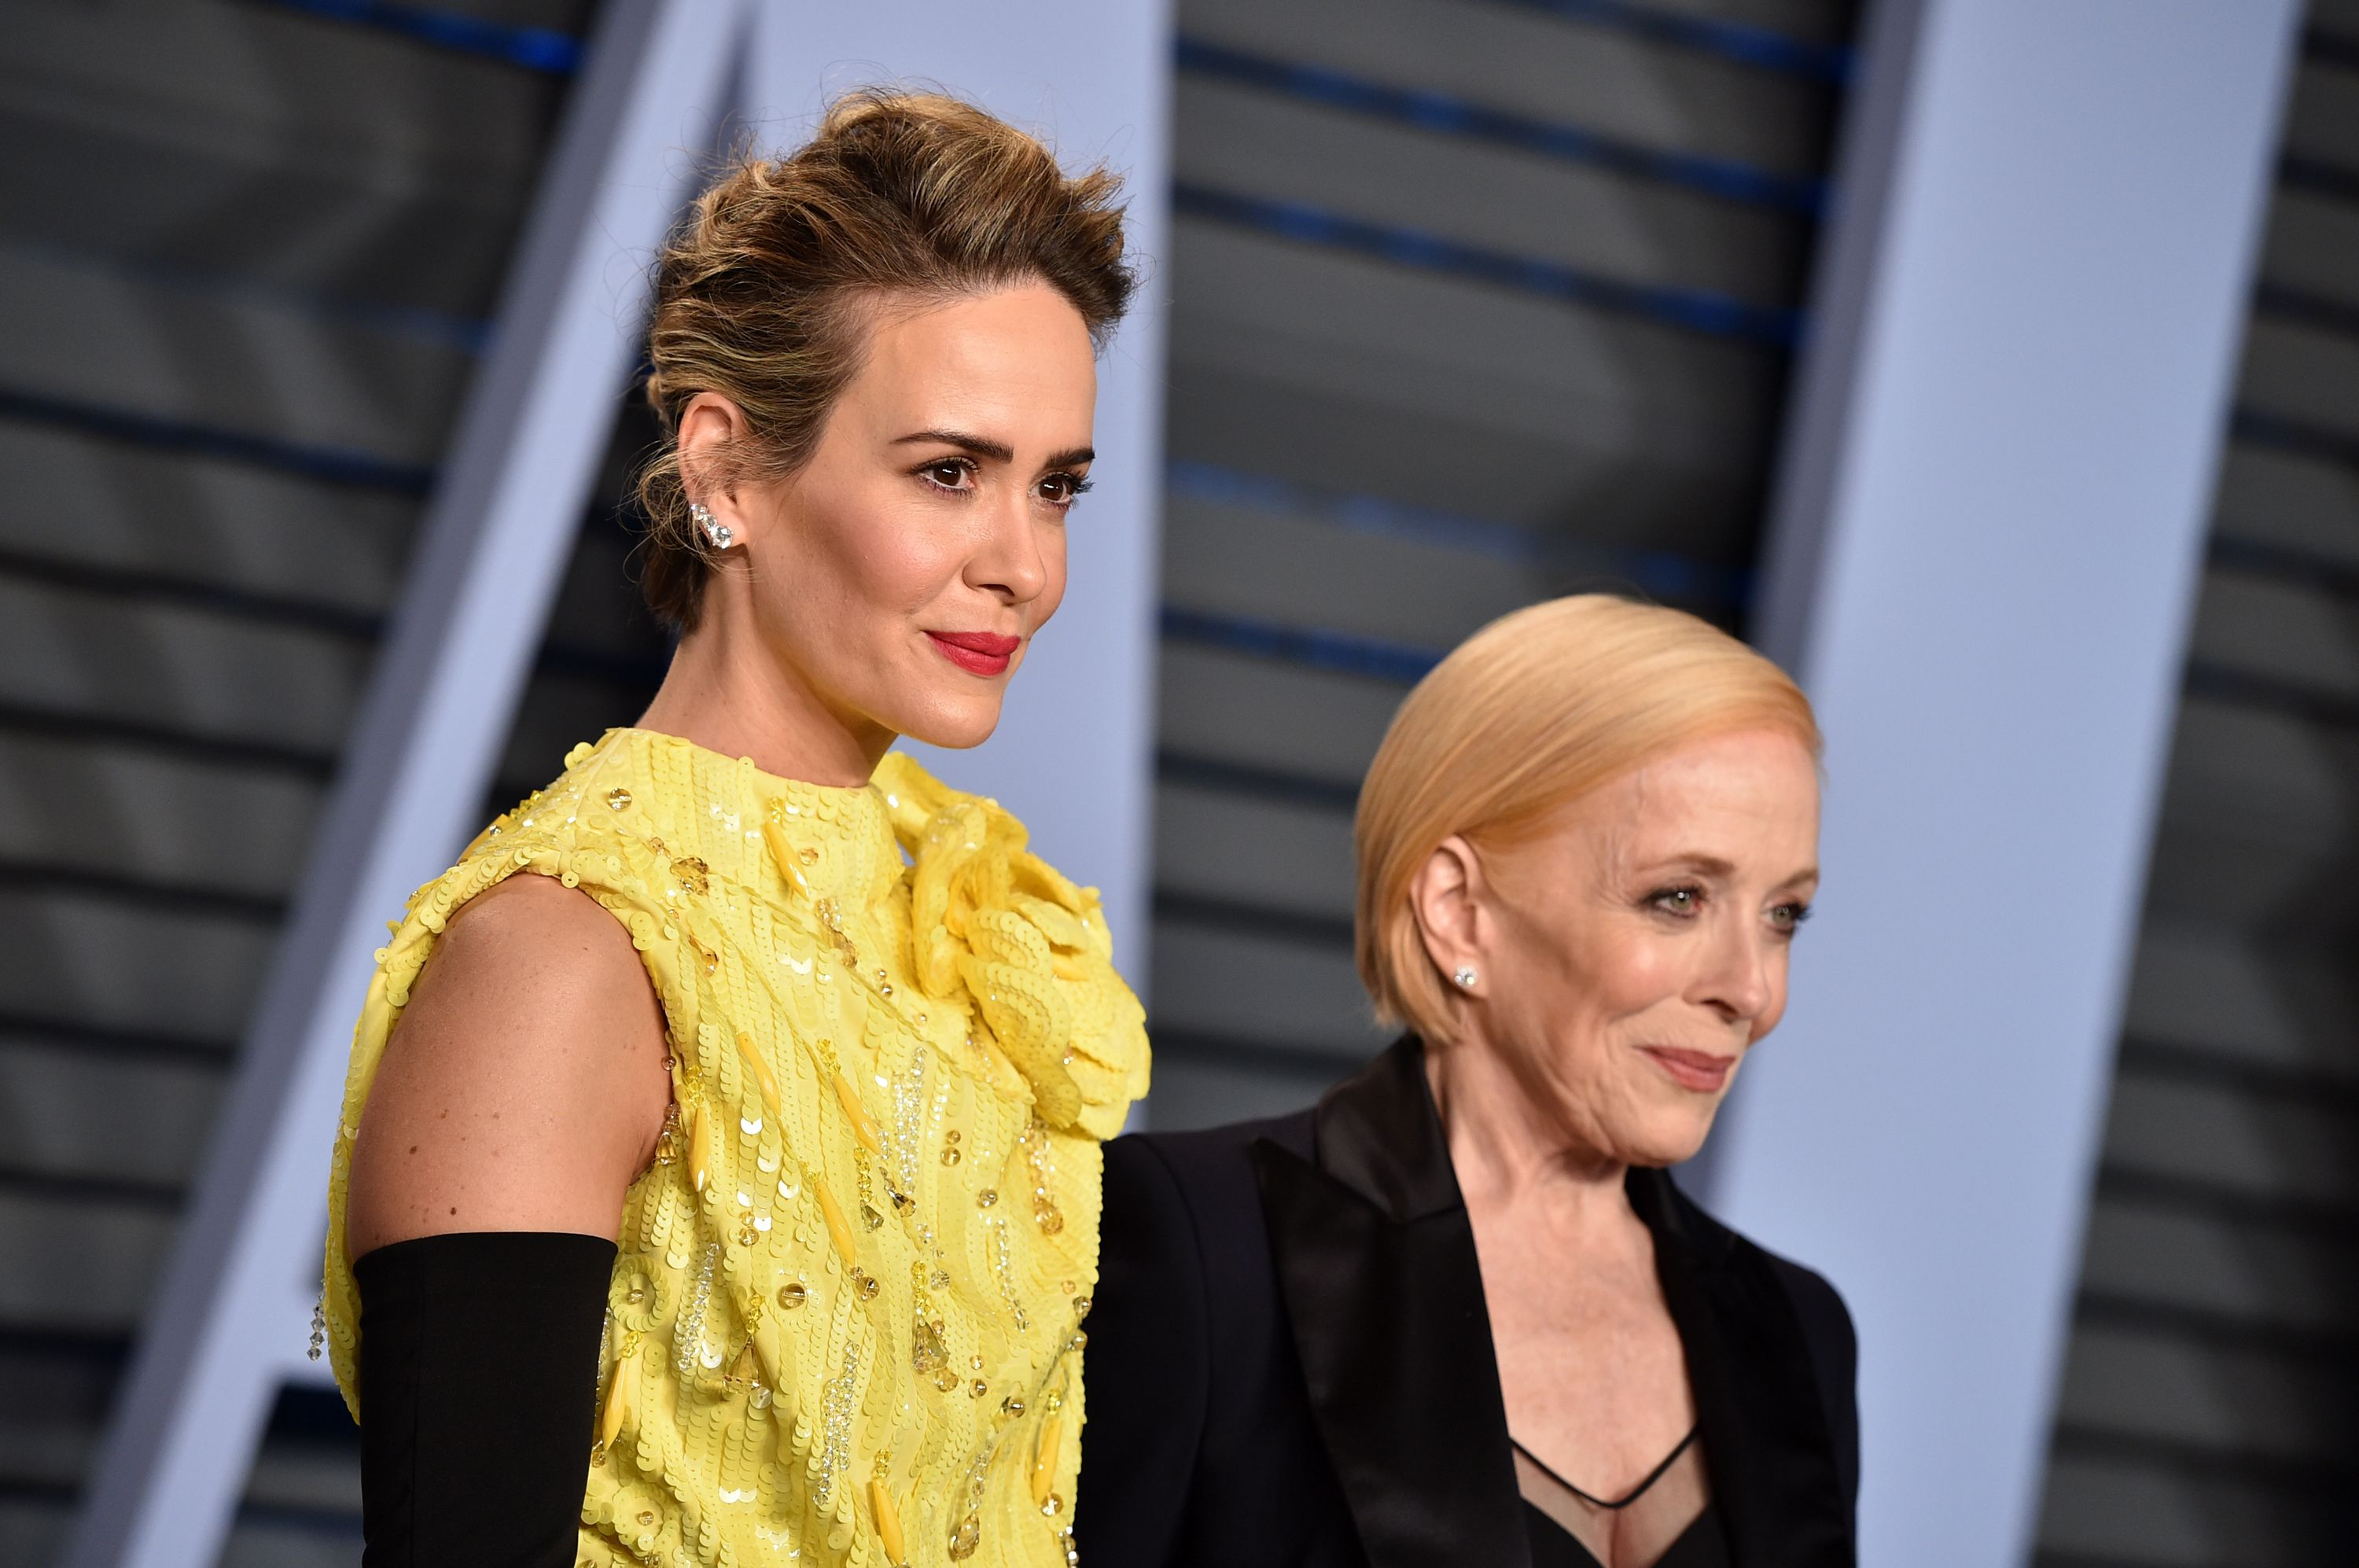 Sarah Paulson and Holland Taylor attend the 2018 Vanity Fair Oscar Party. | Source: Getty Images